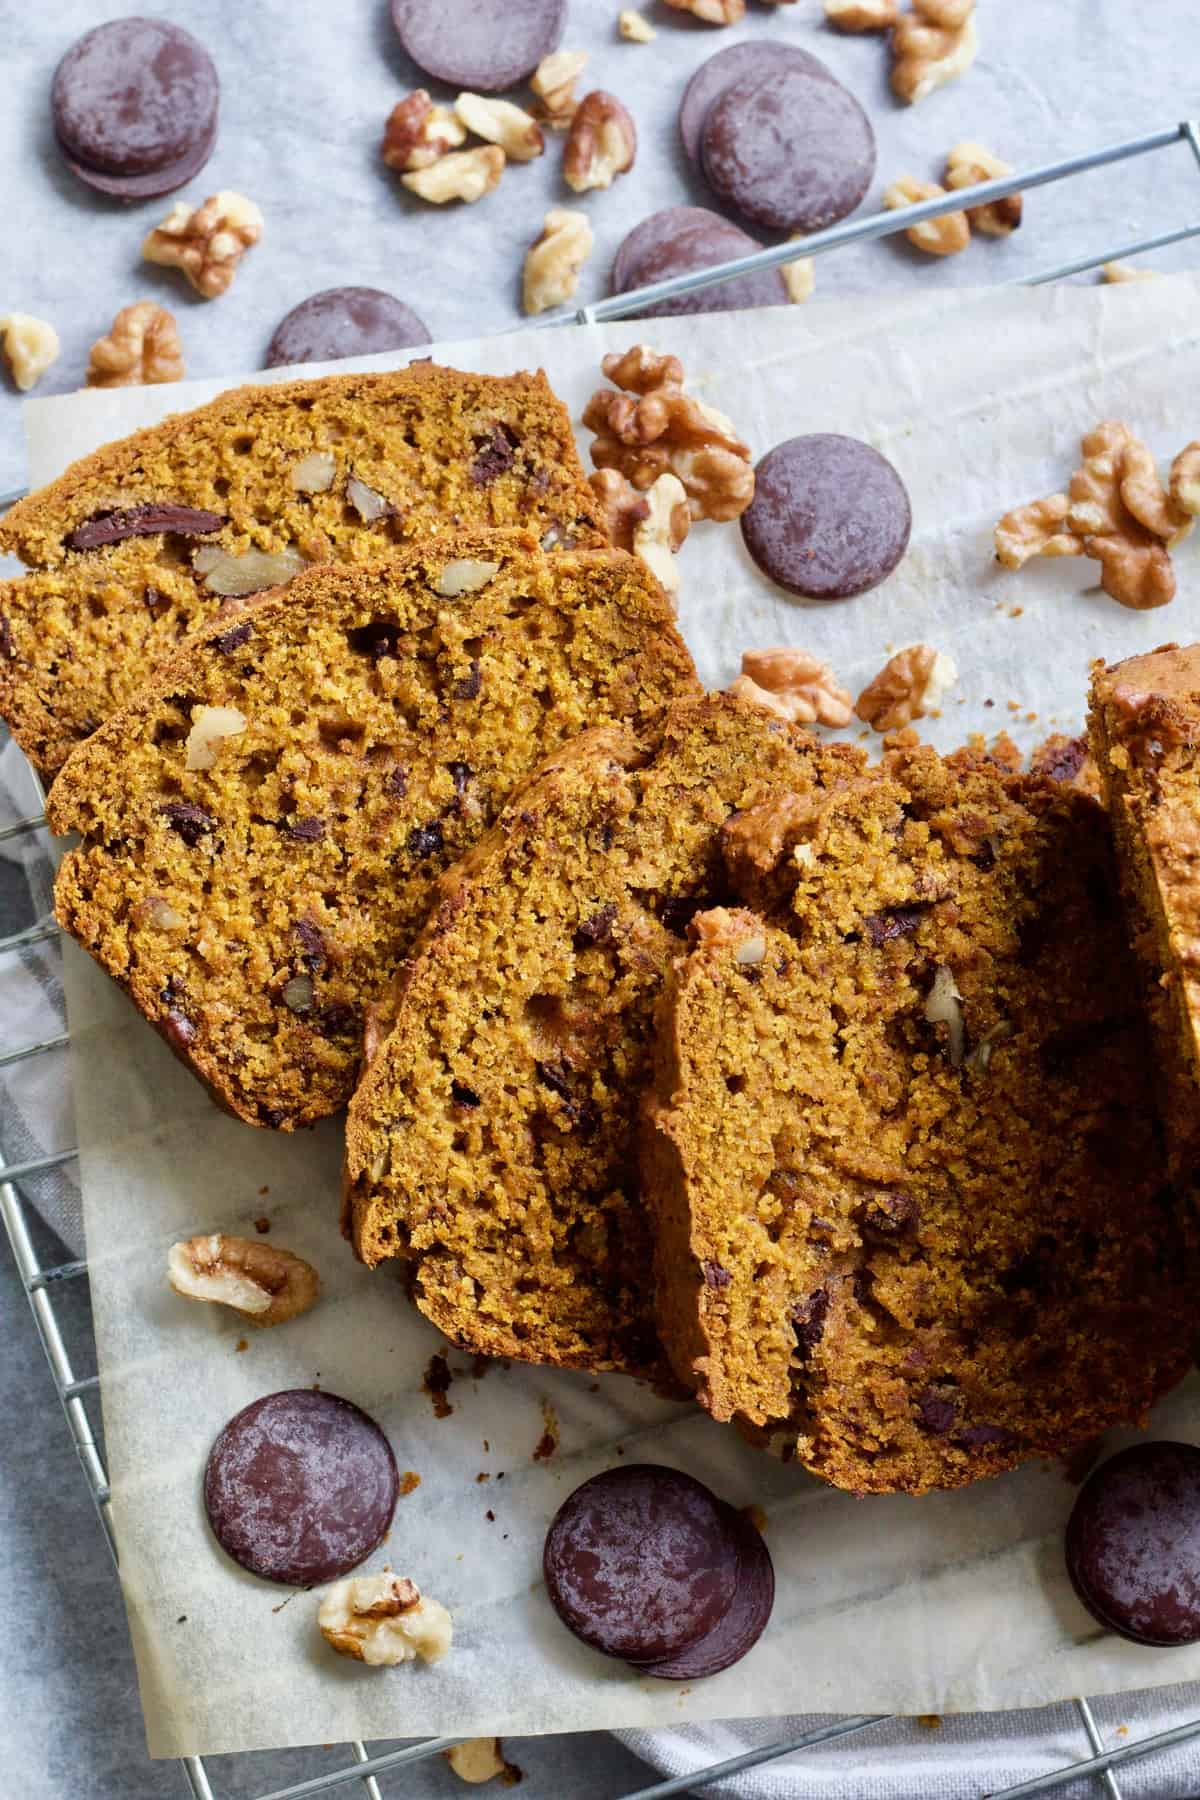 Four slices of pumpkin banana bread with chocolate & nuts around.